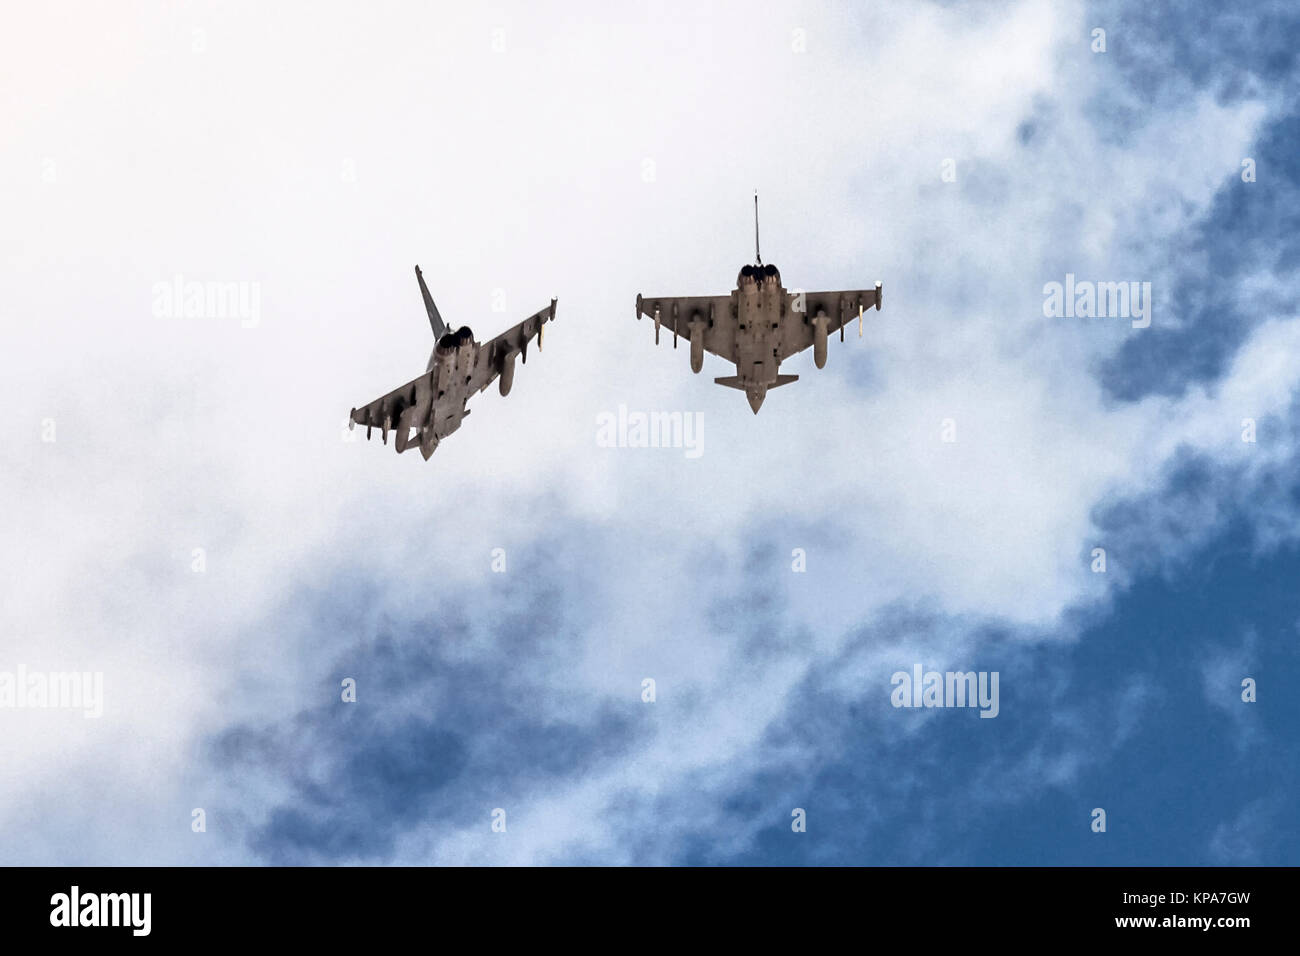 Two German Air Force, Eurofighter Typhoon EF2000 a twin-engine, canard-delta wing, multirole fighter. Photographed Stock Photo